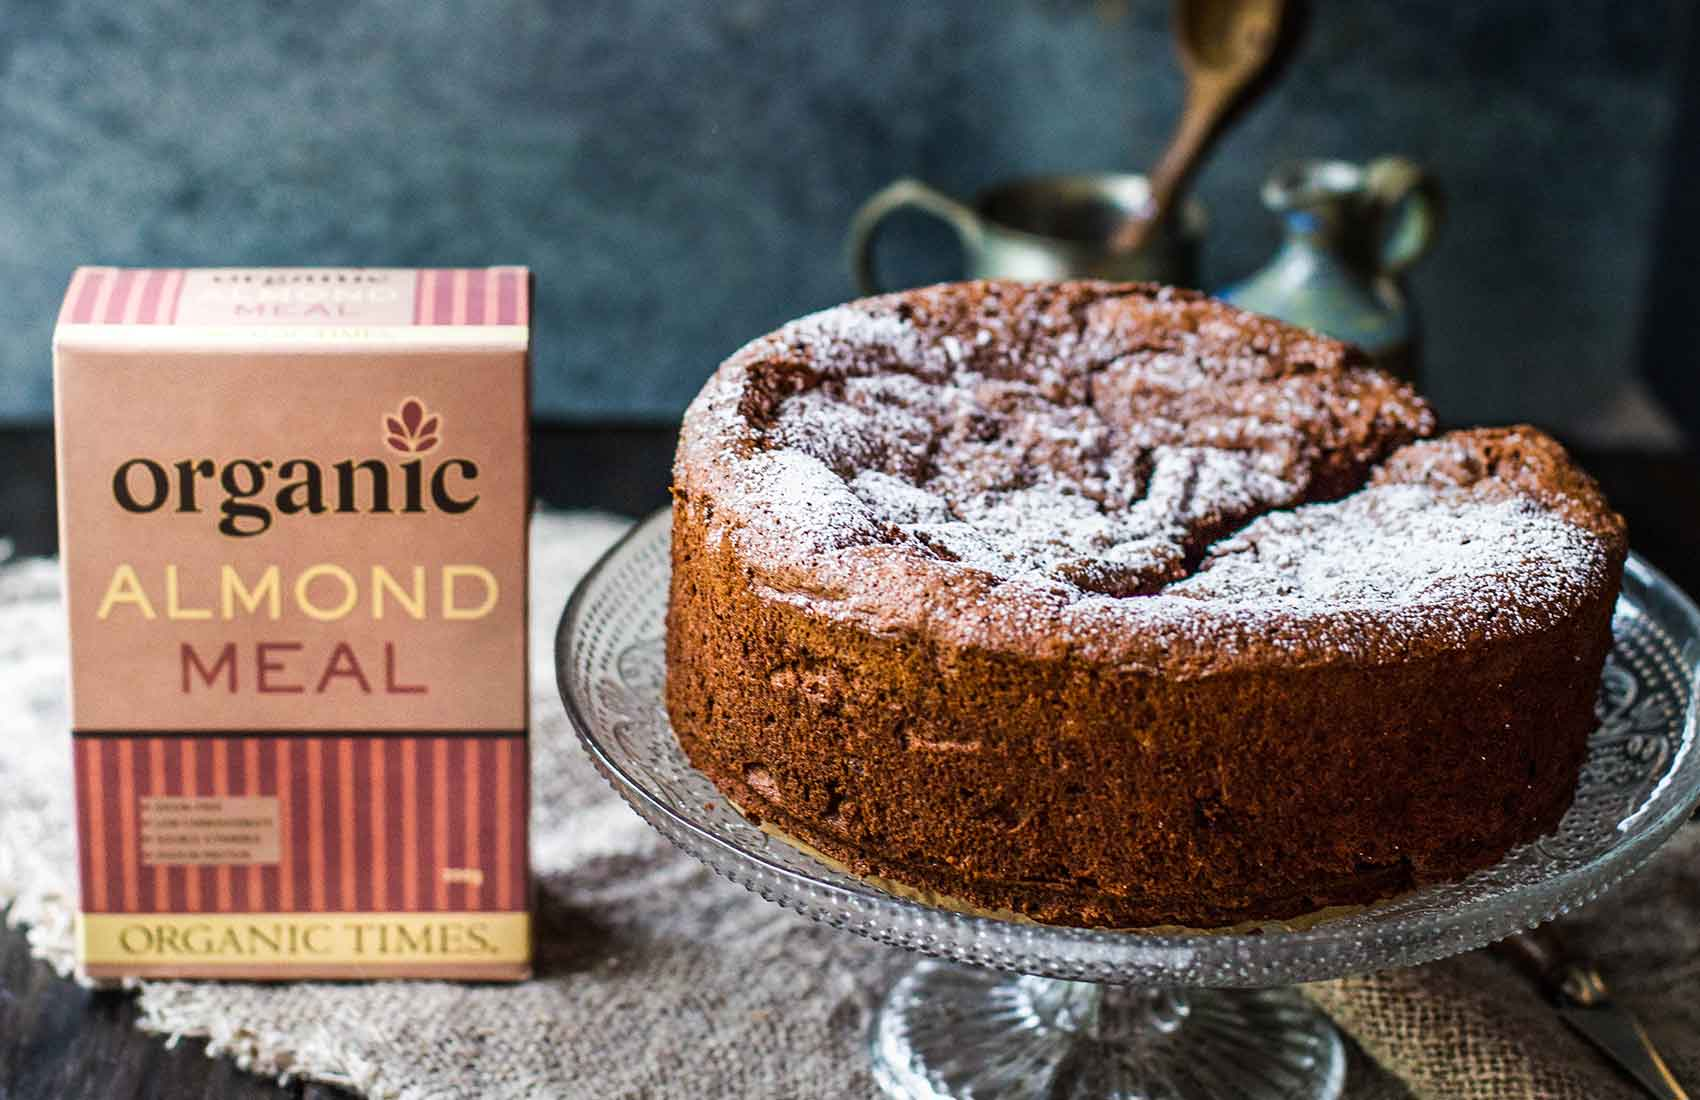 Organic Times Almond Meal box next to a chocolate berry meringue cake